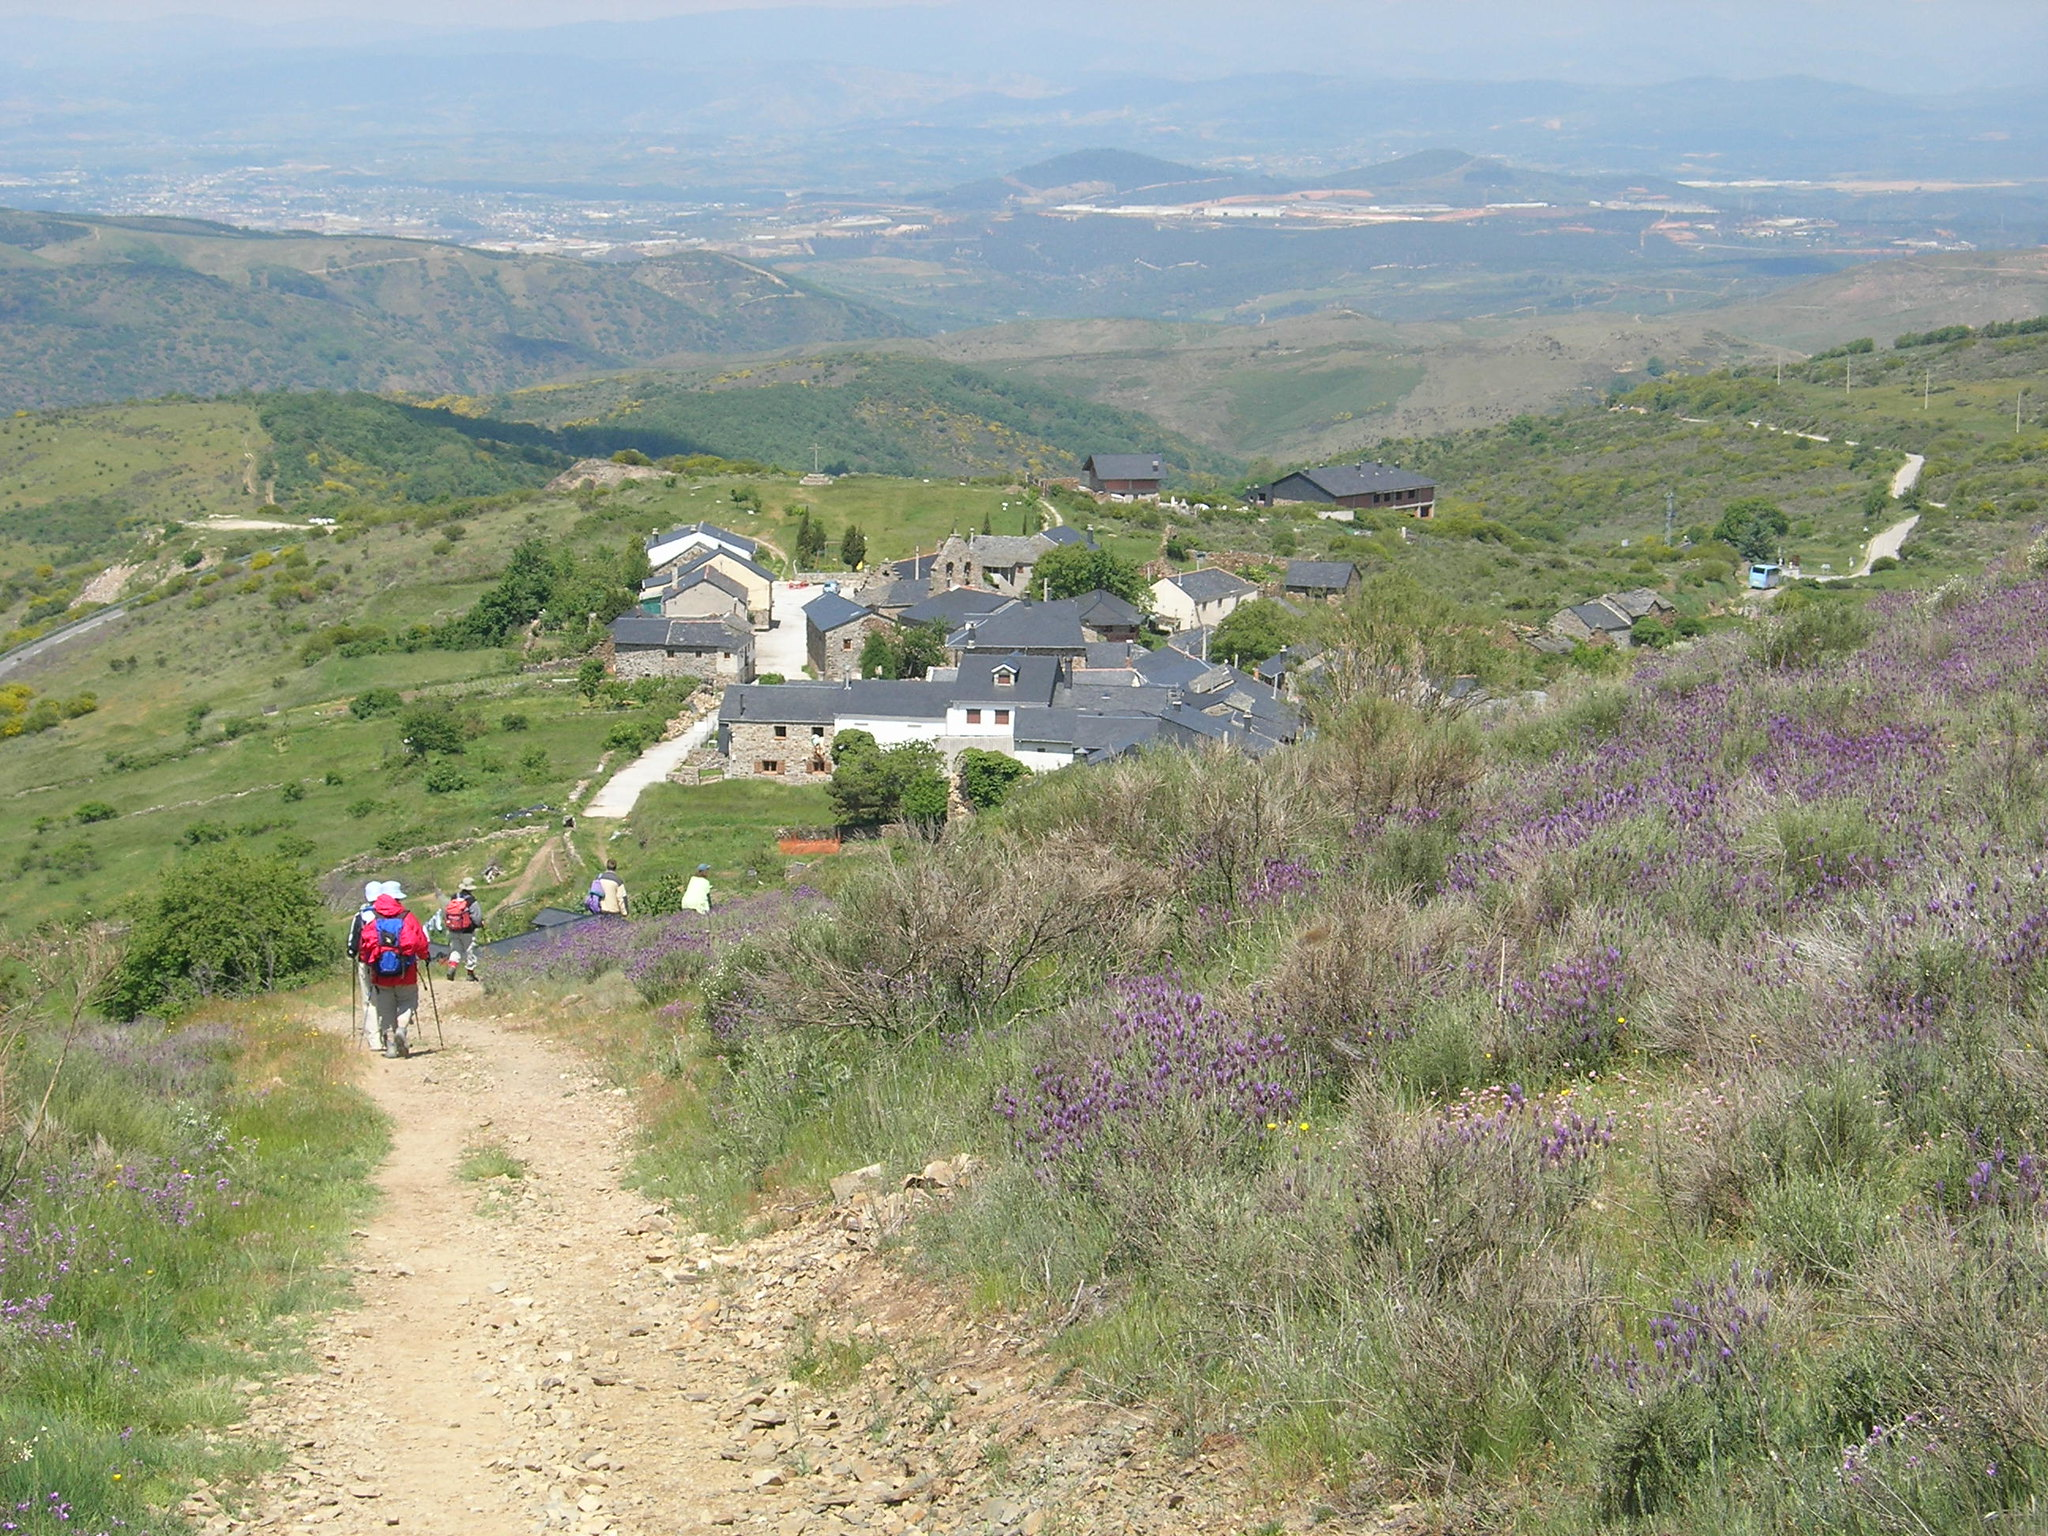 Walking tour of the Camino